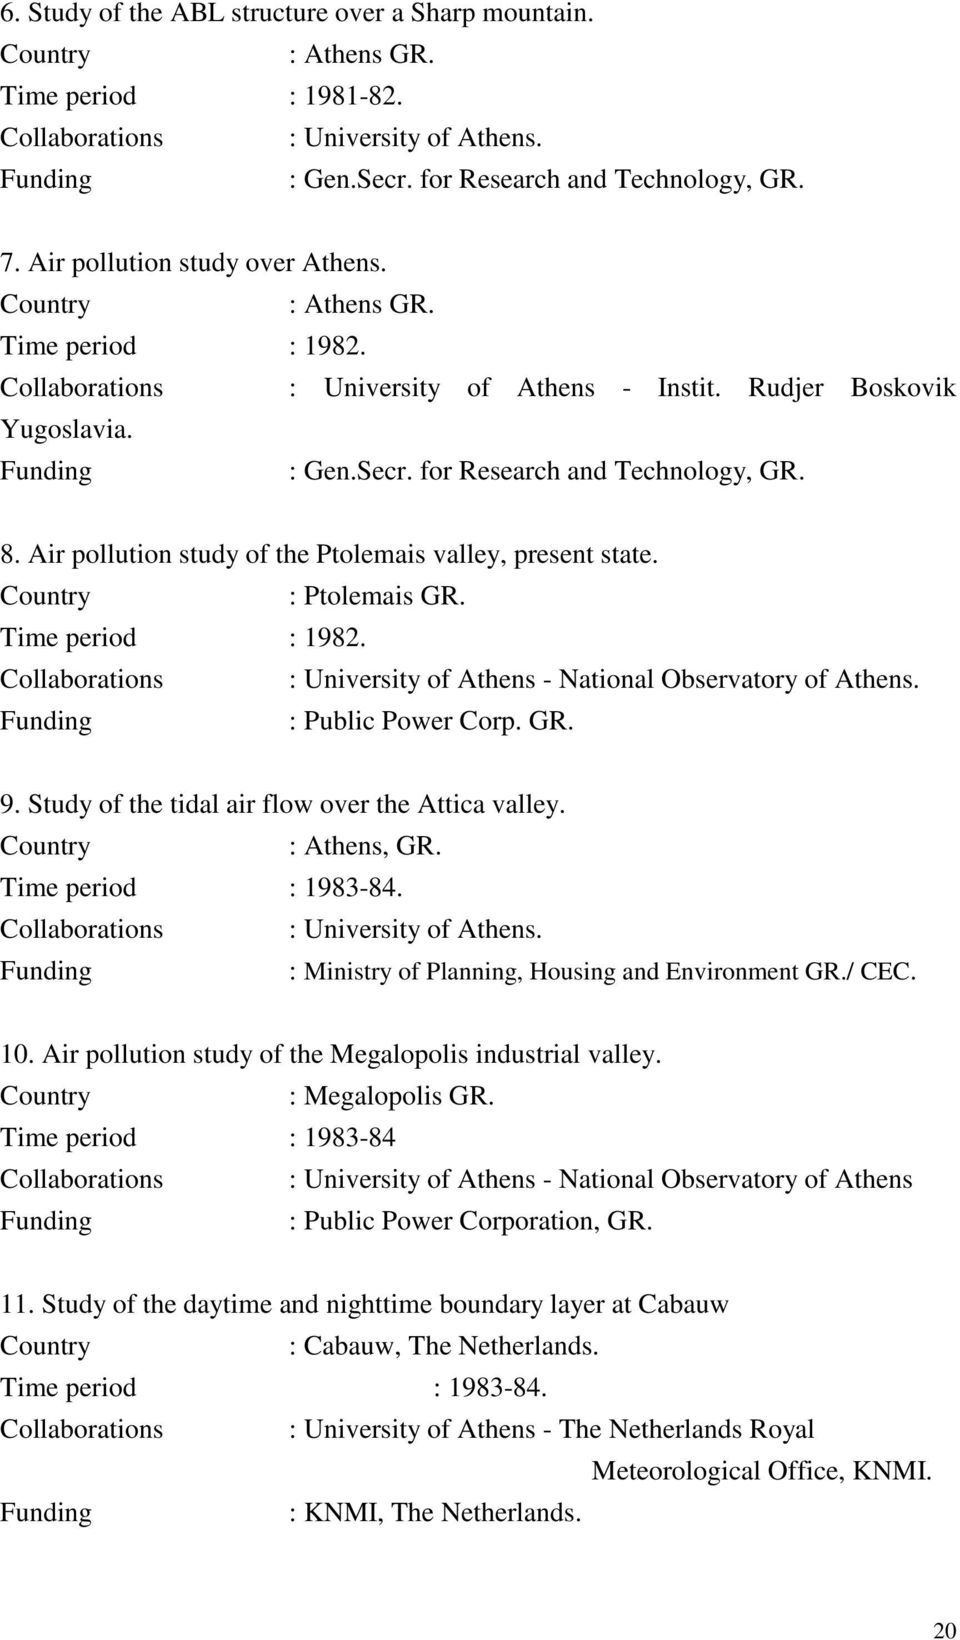 Air pollution study of the Ptolemais valley, present state. : Ptolemais GR. Time period : 1982. Collaborations : University of Athens - National Observatory of Athens. : Public Power Corp. GR. 9.